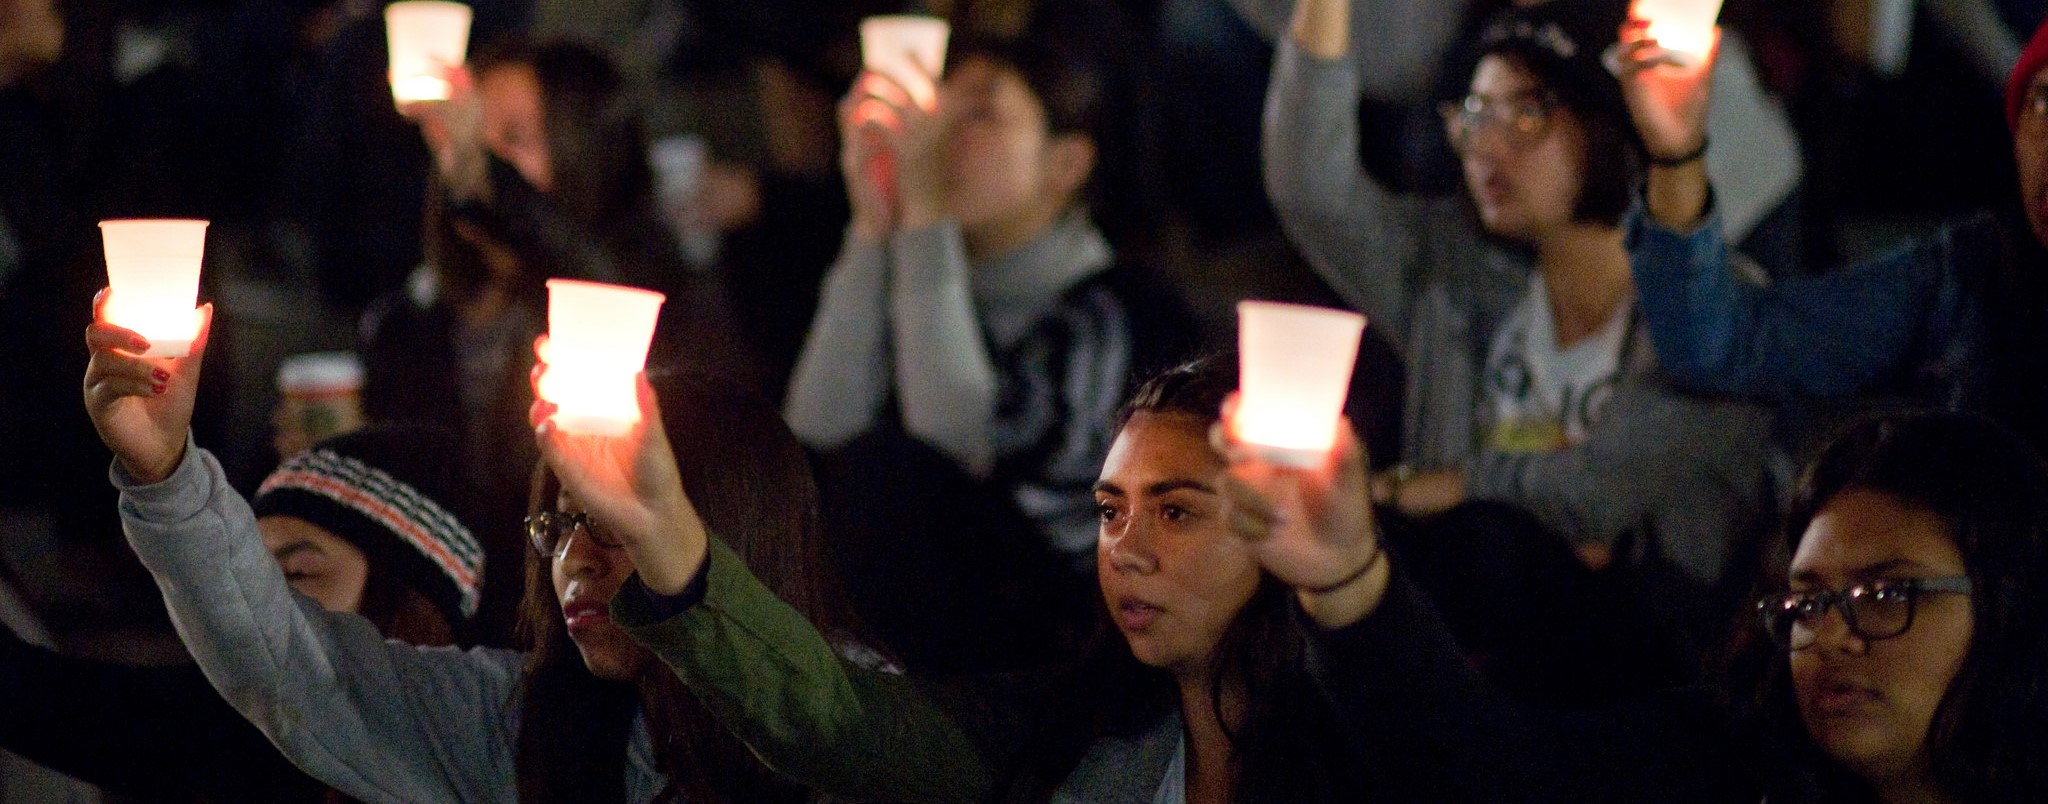 A candlelit vigil for victims of 2015 terrorist attacks in Paris, Beirut, and Baghdad. (Photo: Flickr/UCI)